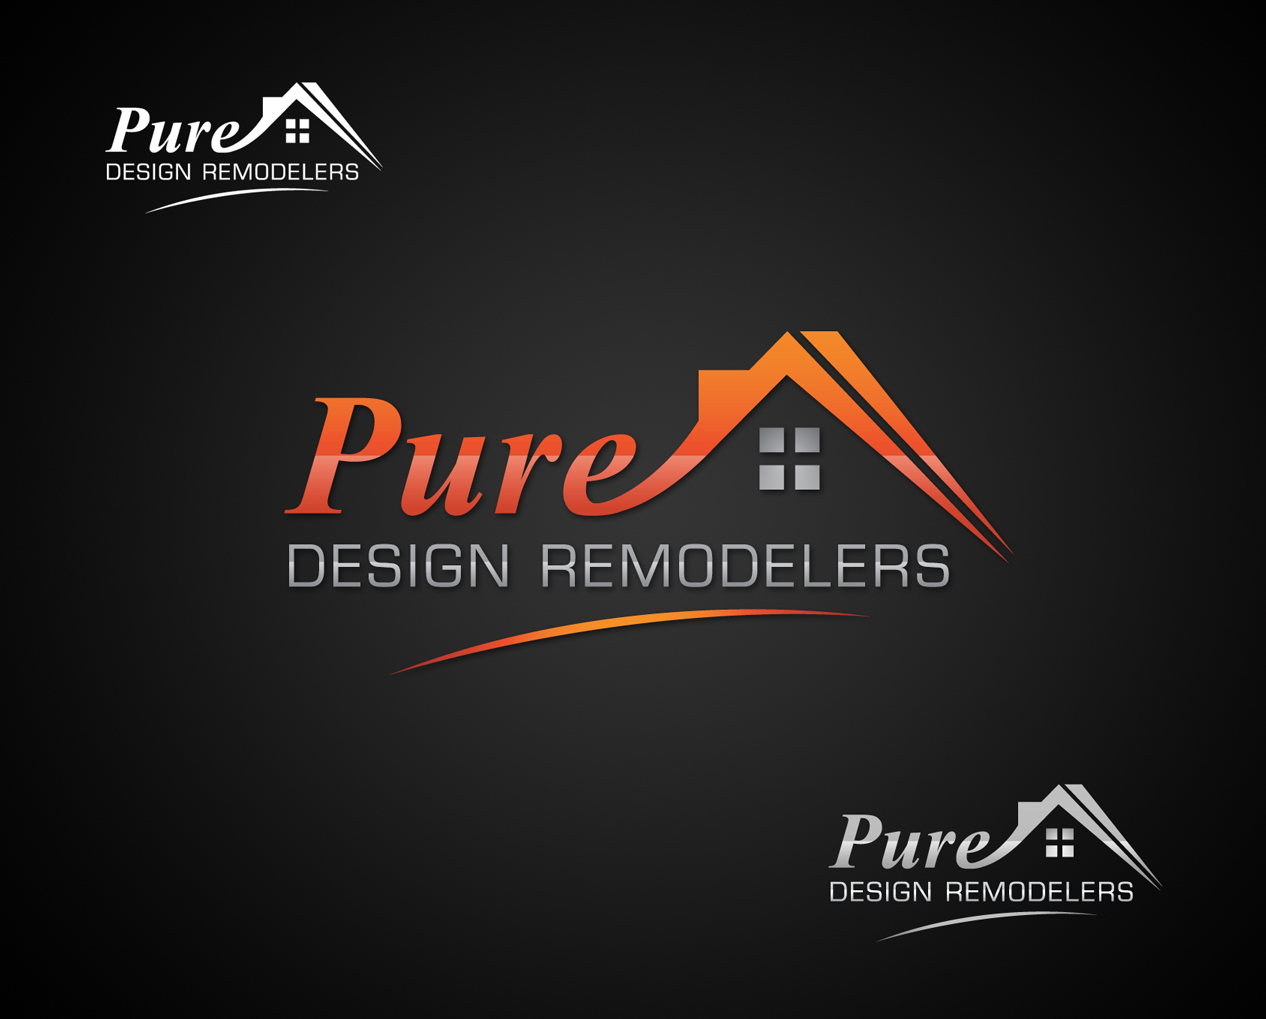 Logo Design by Creasian - Entry No. 122 in the Logo Design Contest Custom Logo Design for Pure Design Remodelers.